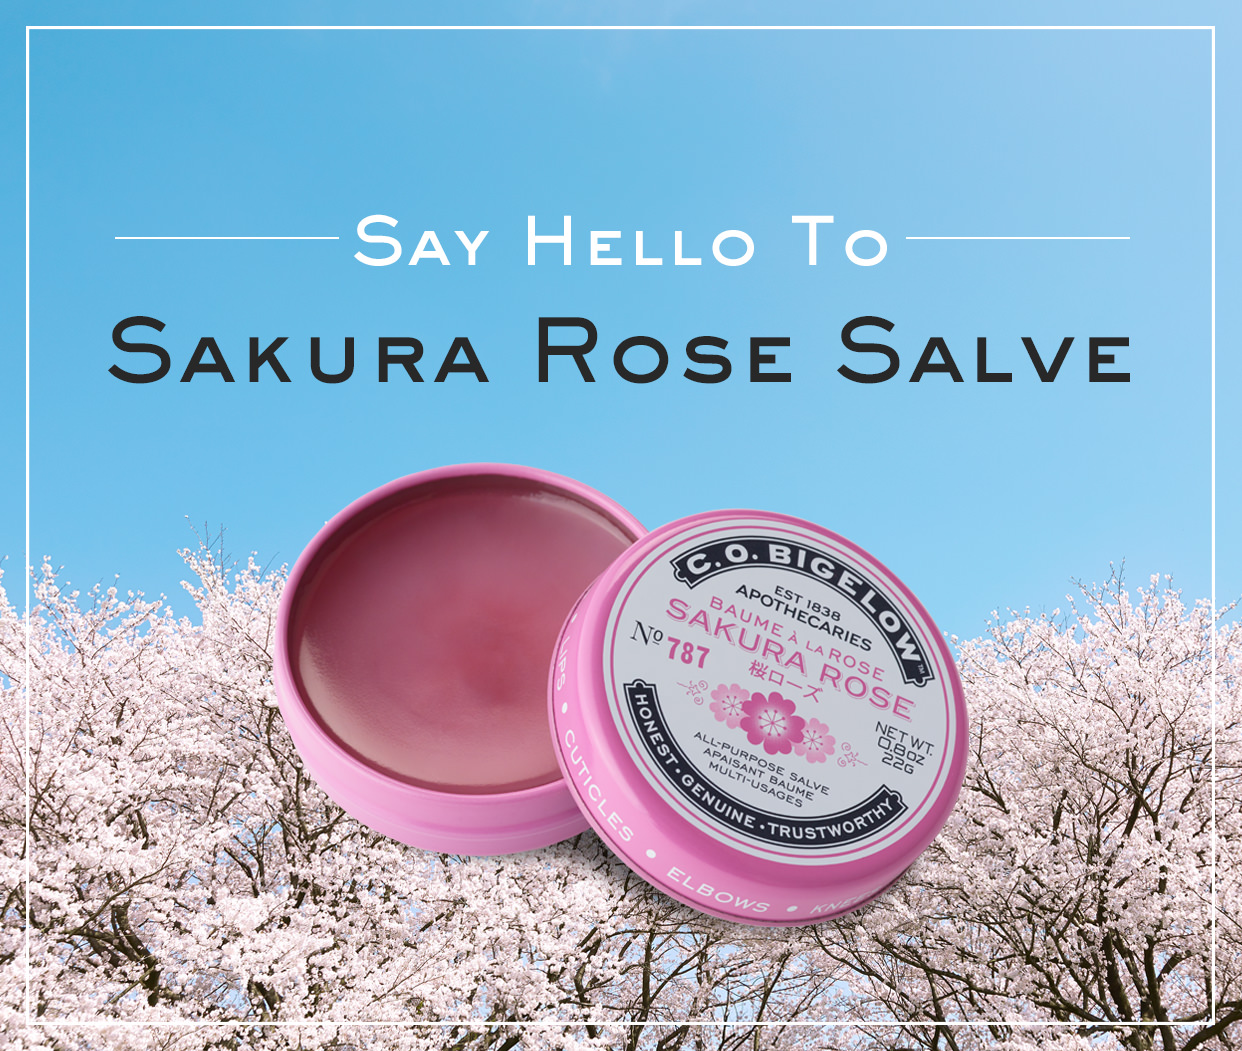 sakura rose salve